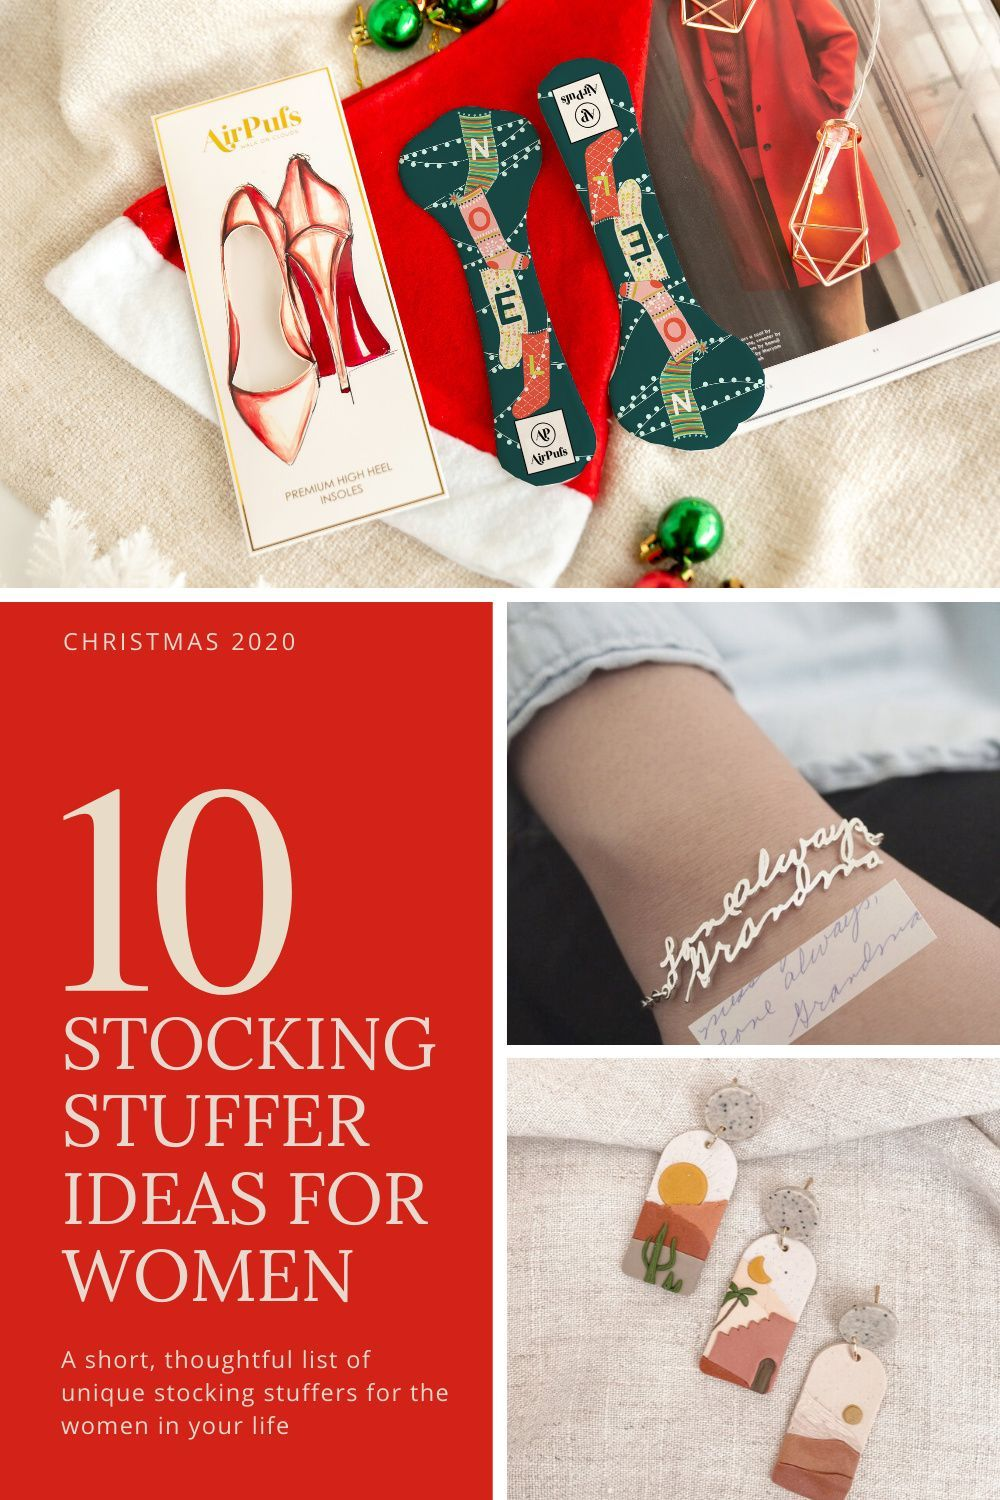 Tis the season for holiday shopping! Want to fill your stockings with thoughtful, unique gifts that will be loved and used all year? Look no further than our short guide. Curated from small businesses and makers #Etsymakers #christmasgiftideas #stockingstuffersforwomen #stockingstuffersforwife #stockingstufferideas #uniquestockingstuffers